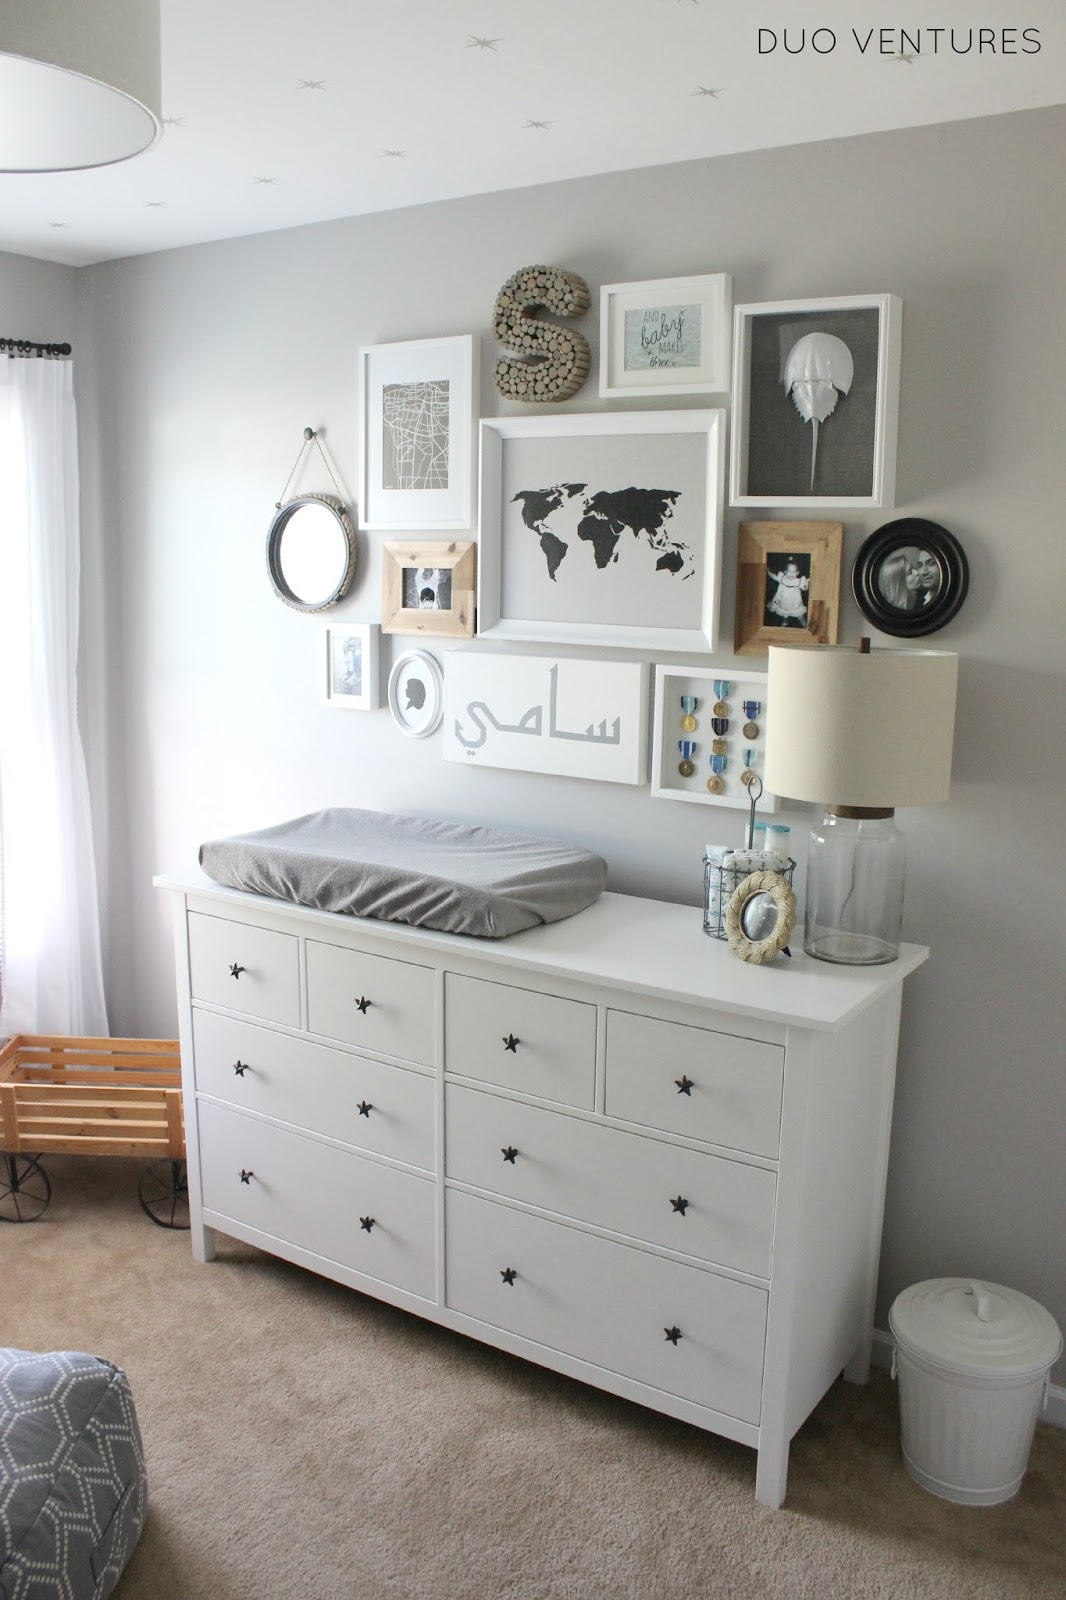 We Are Really Hy With Our Custom Nursery Dresser Love That It Will Transition Sami